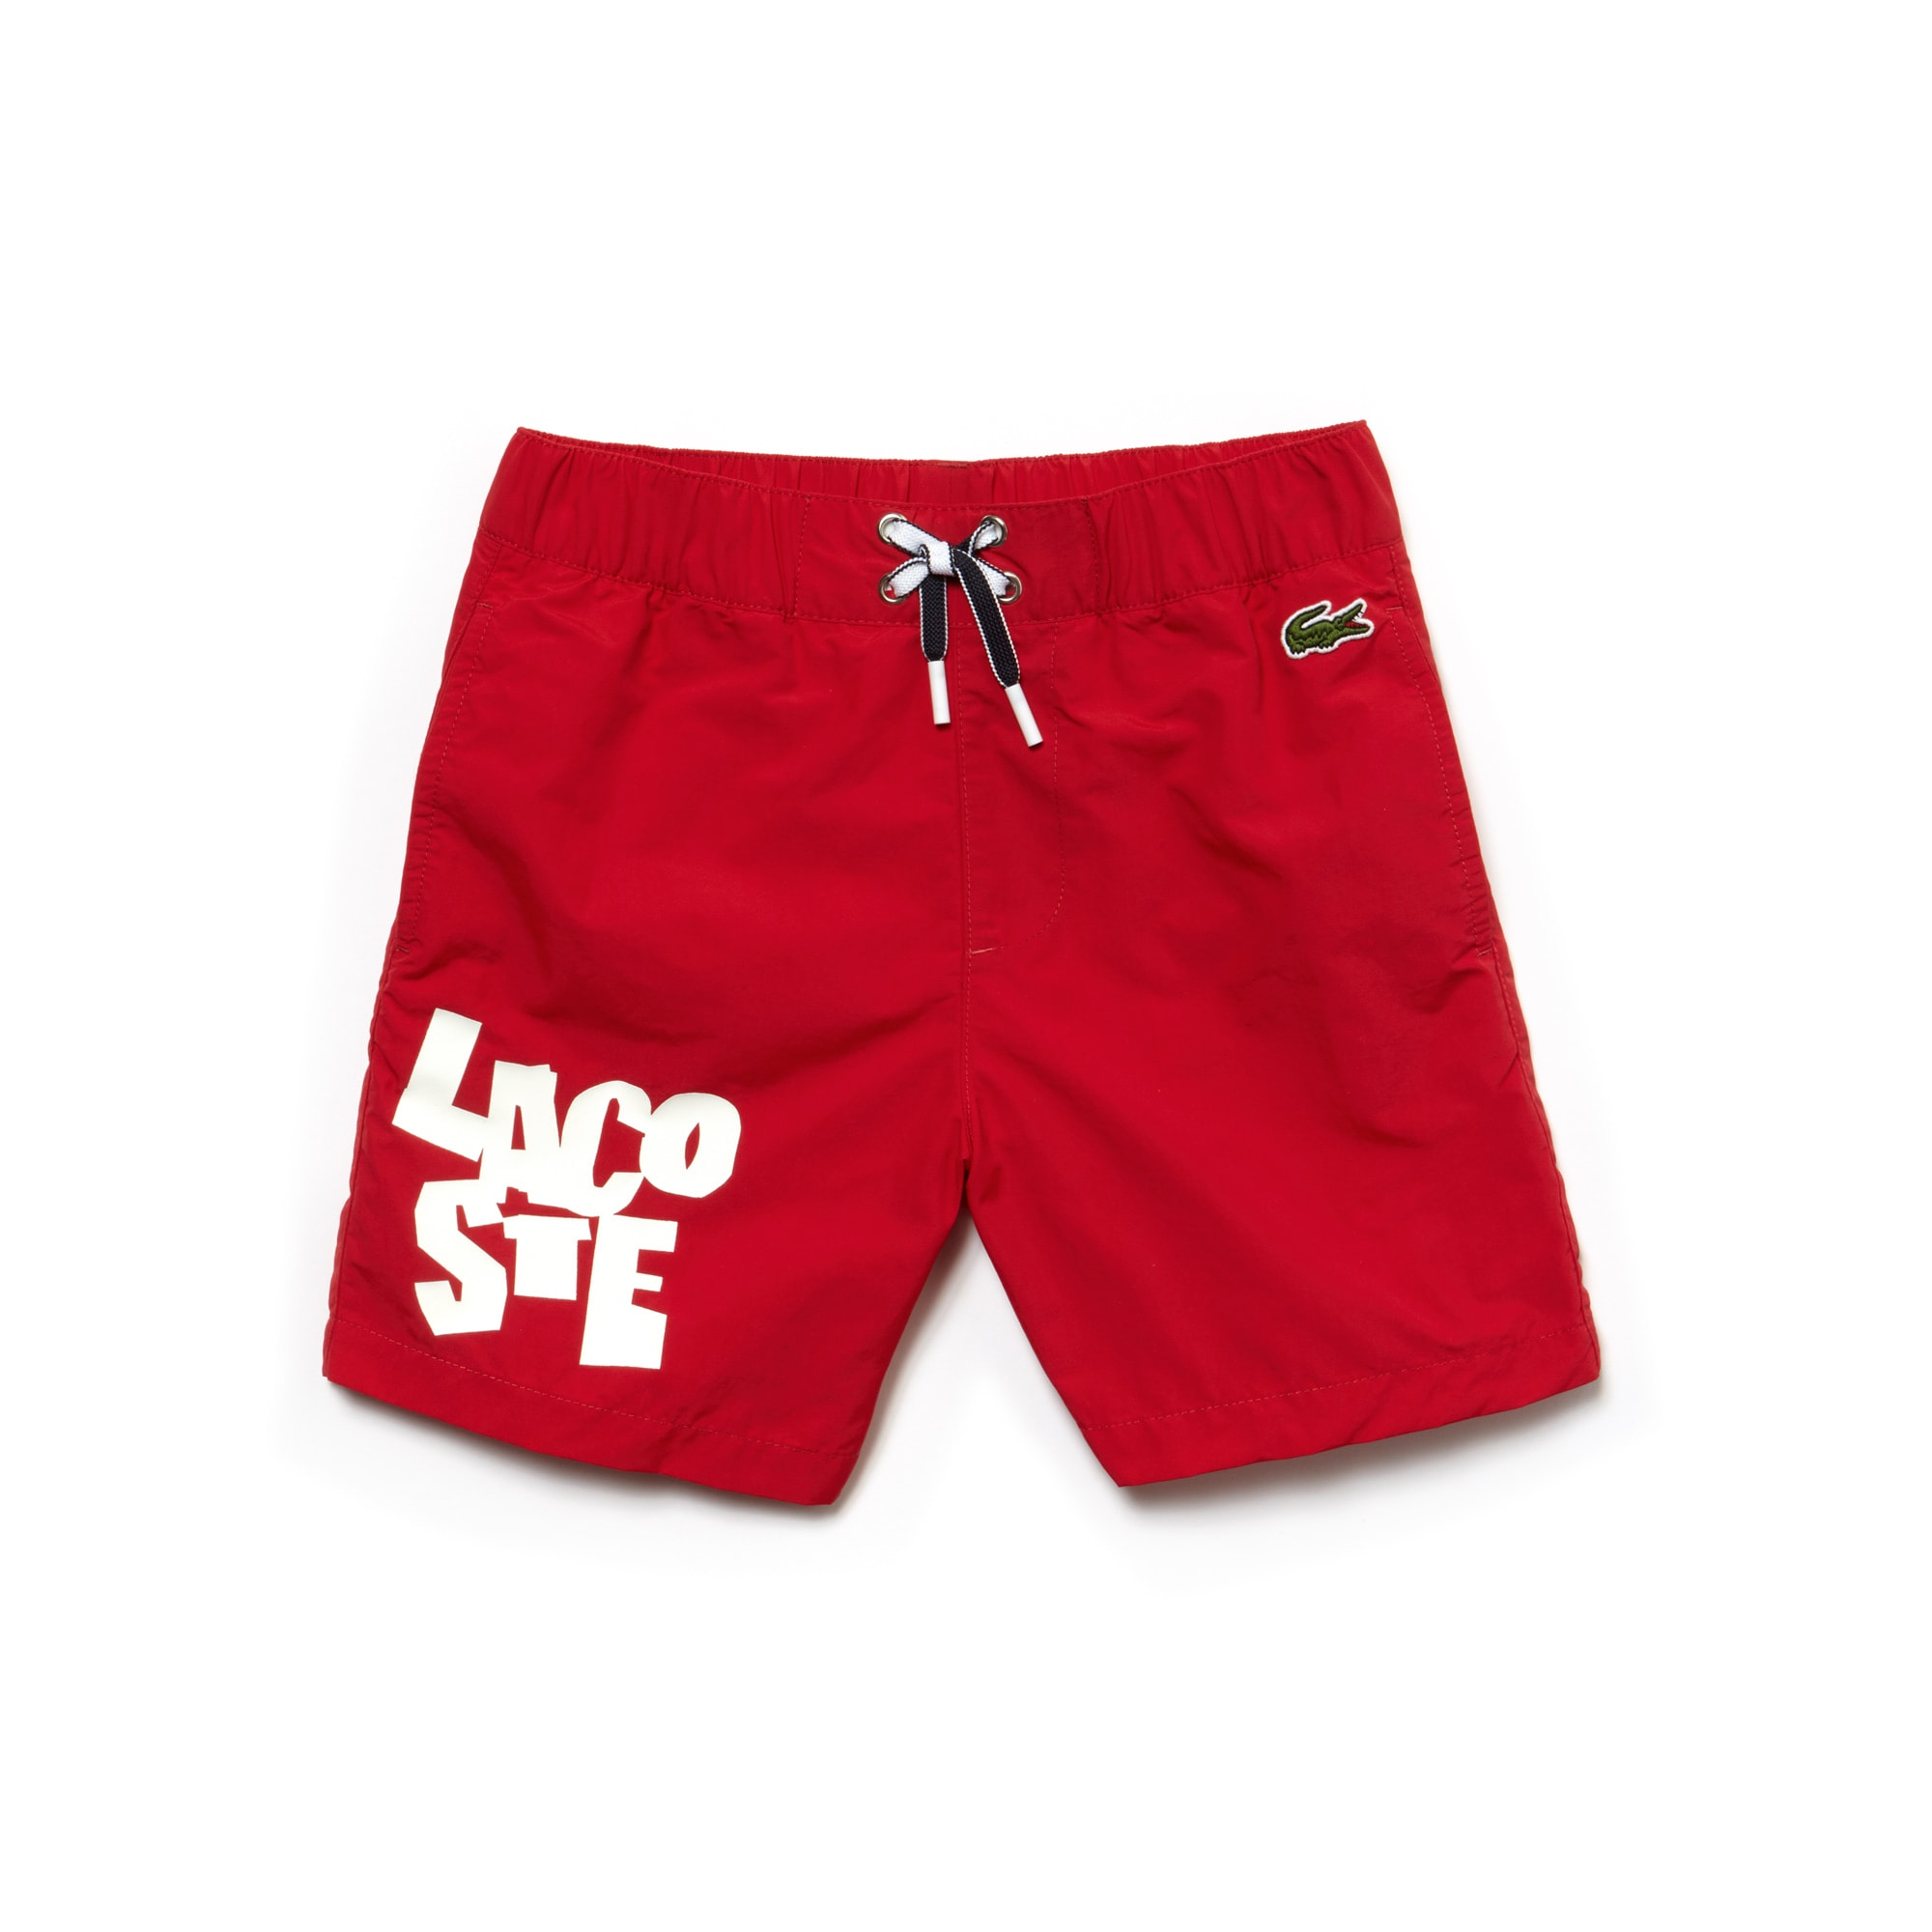 Boys' Lacoste Lettering Canvas Swimming Trunks